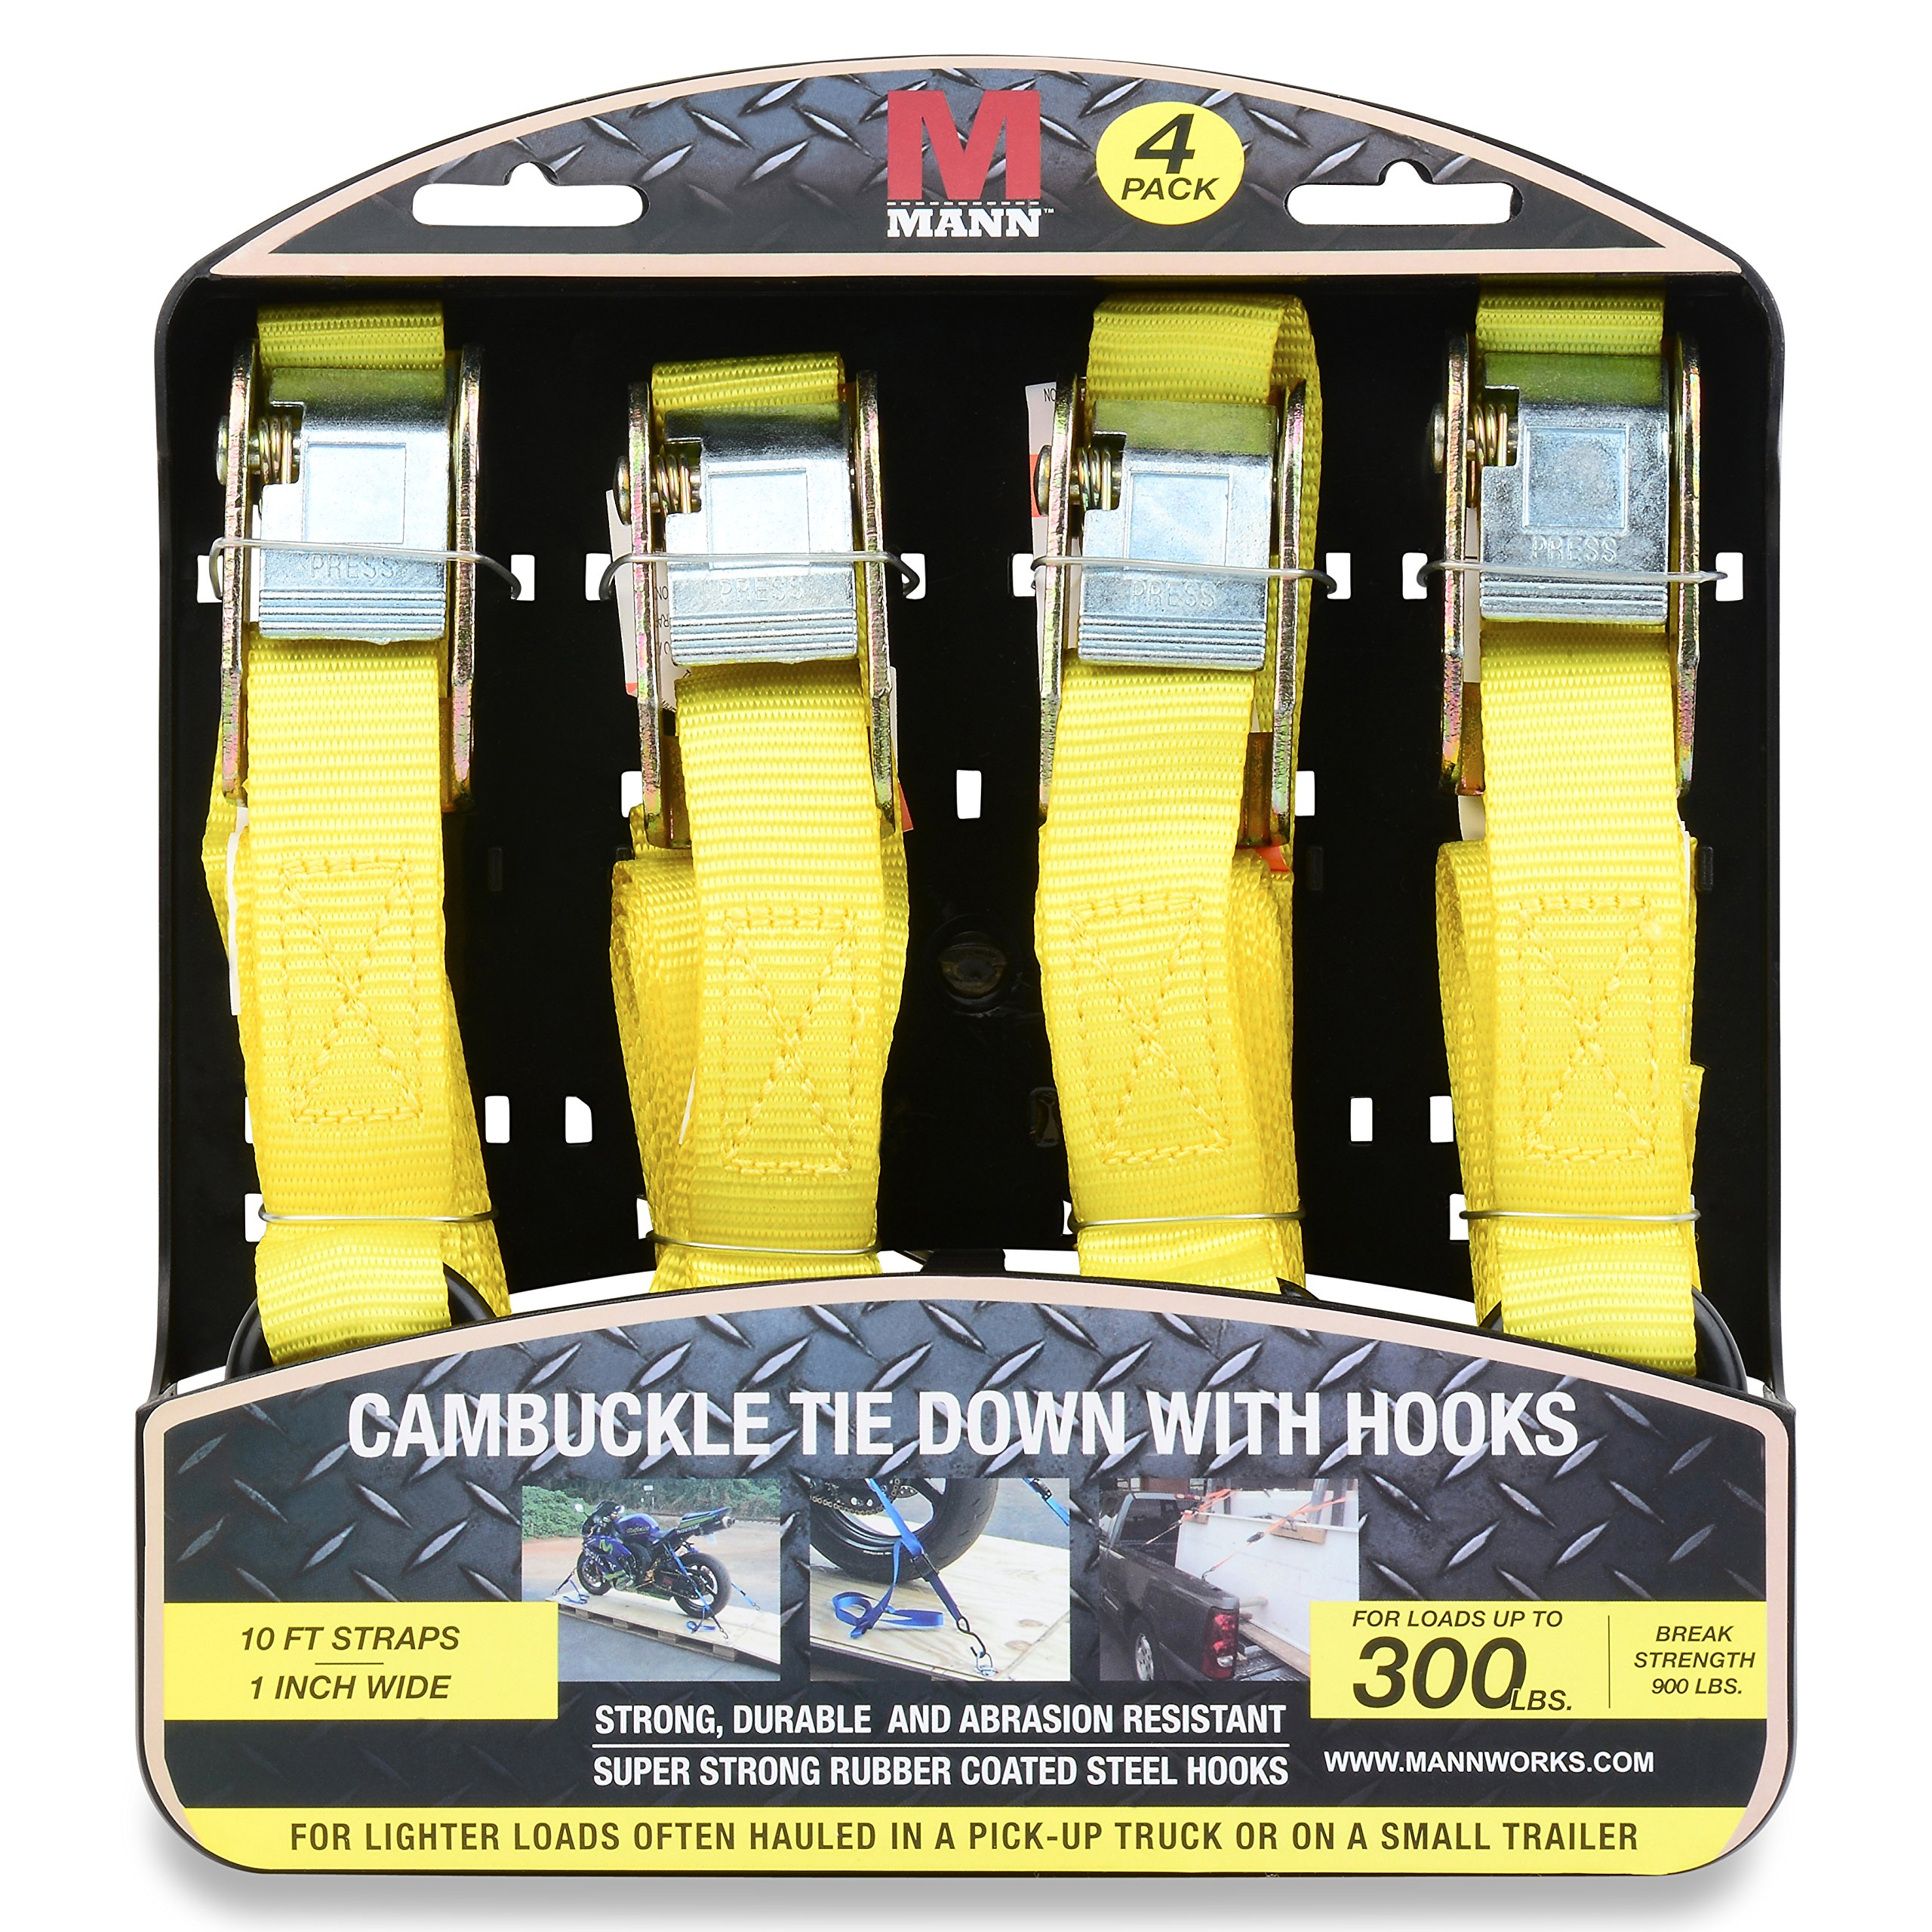 Mann Cambuckle Tie Down Straps with S-hooks 4-Pack Set 1''x10' 300lb Load Capacity 900lb Break Strength (Yellow)